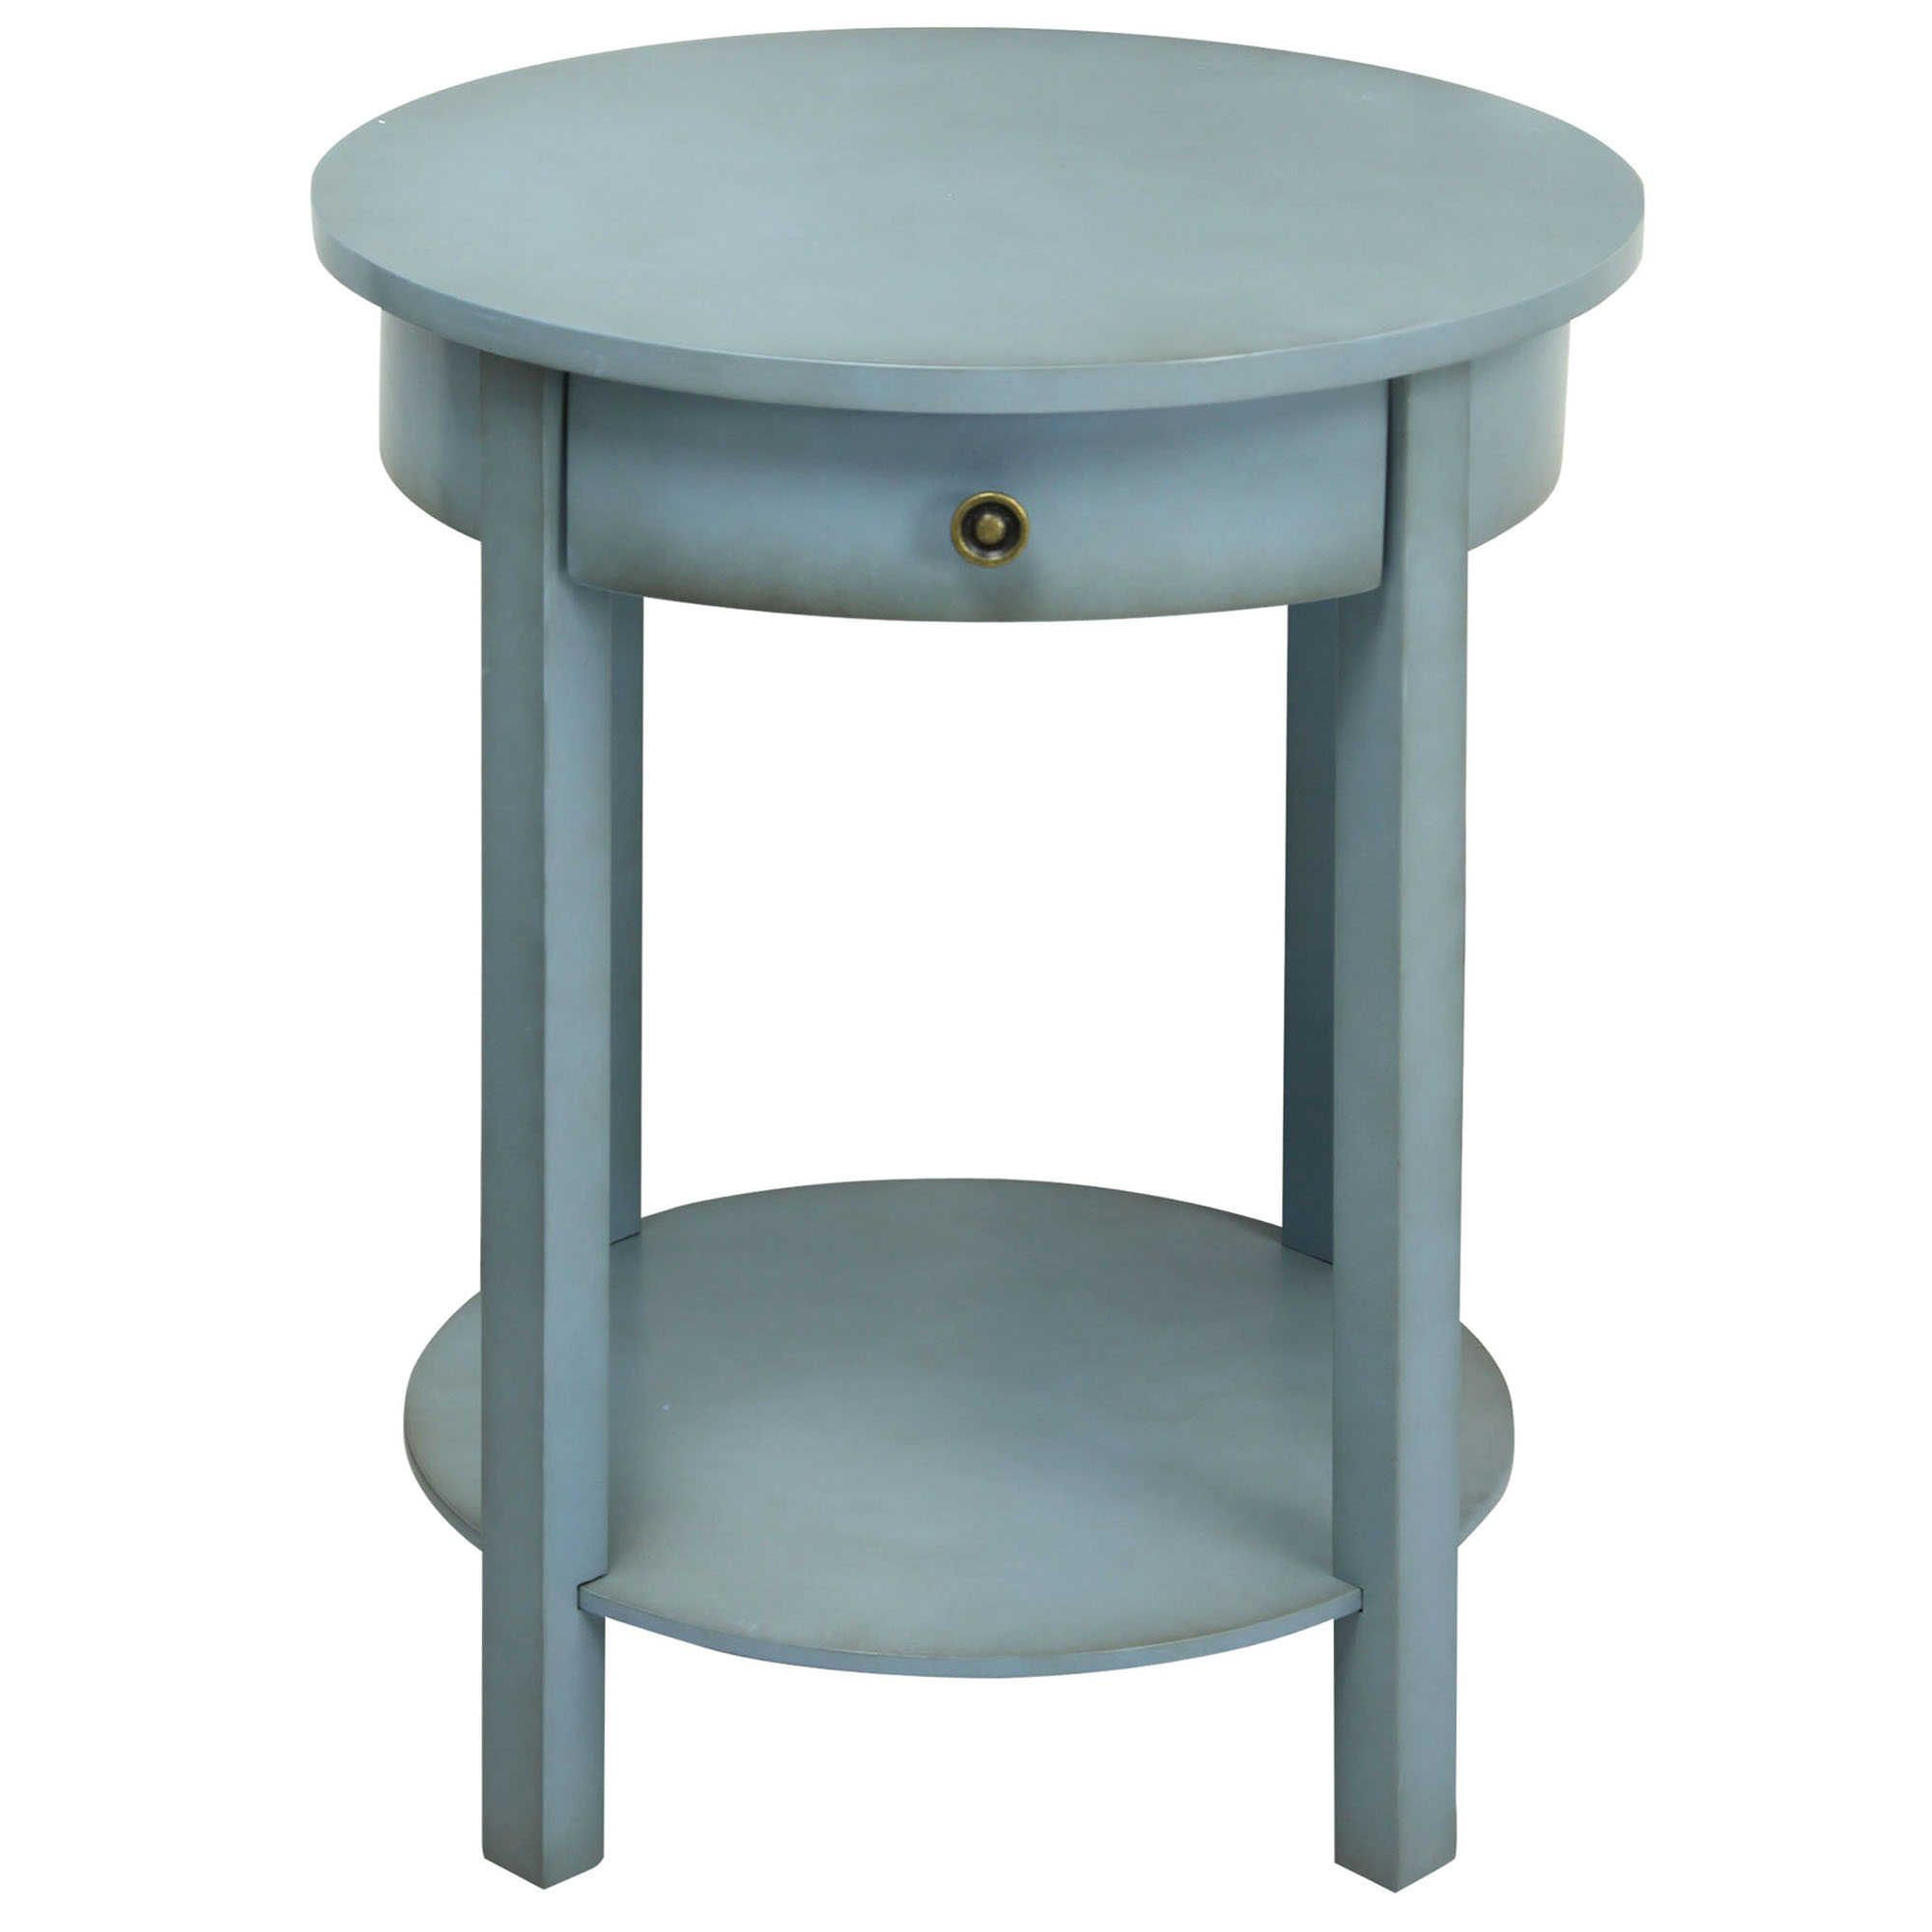 round tier wooden accent table light blue home decorating chest for living room modern clock side units white dining and chairs thin console groups west elm carpets floor cushion